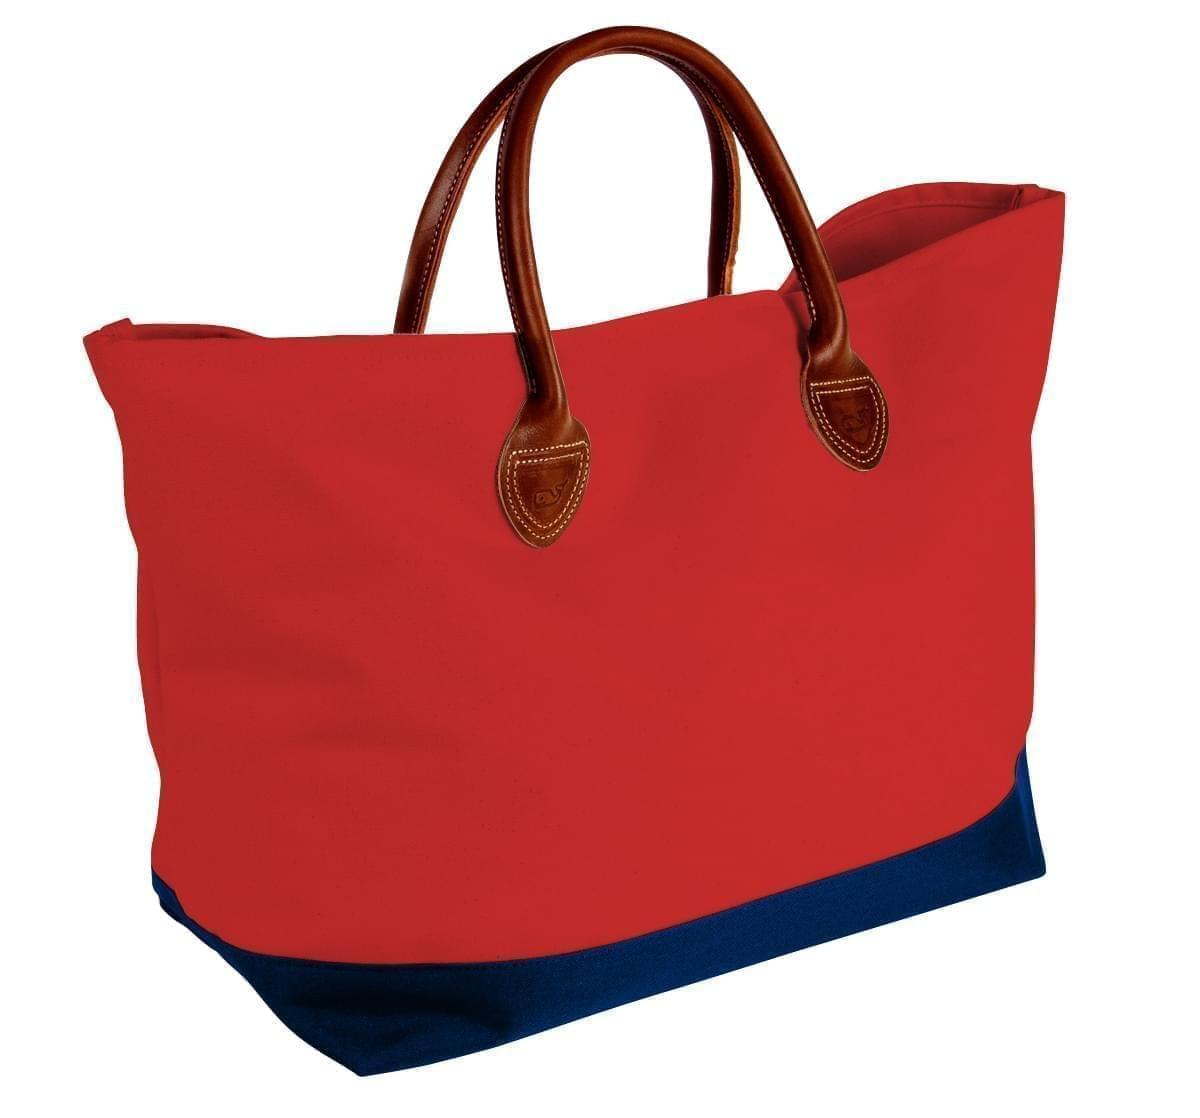 USA Made Canvas Leather Handle Totes, Red-Navy, 10899-IE9